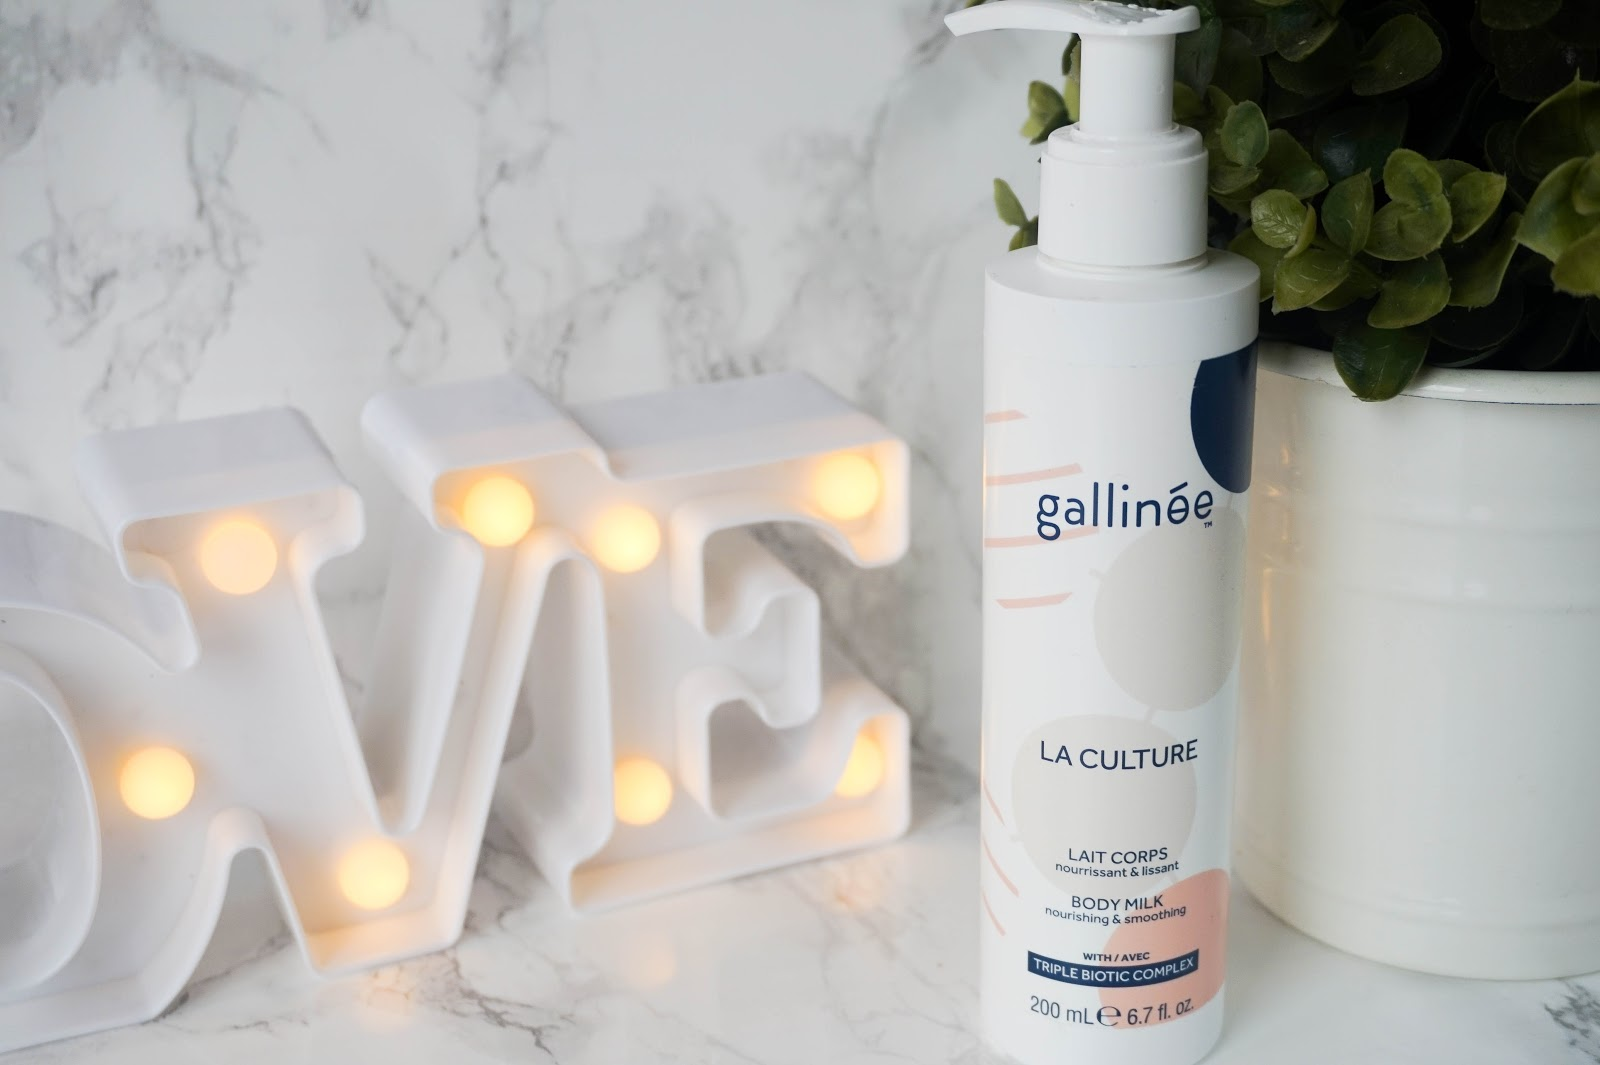 New Body Care Products on Trial, Gallinee La Culture Body Milk